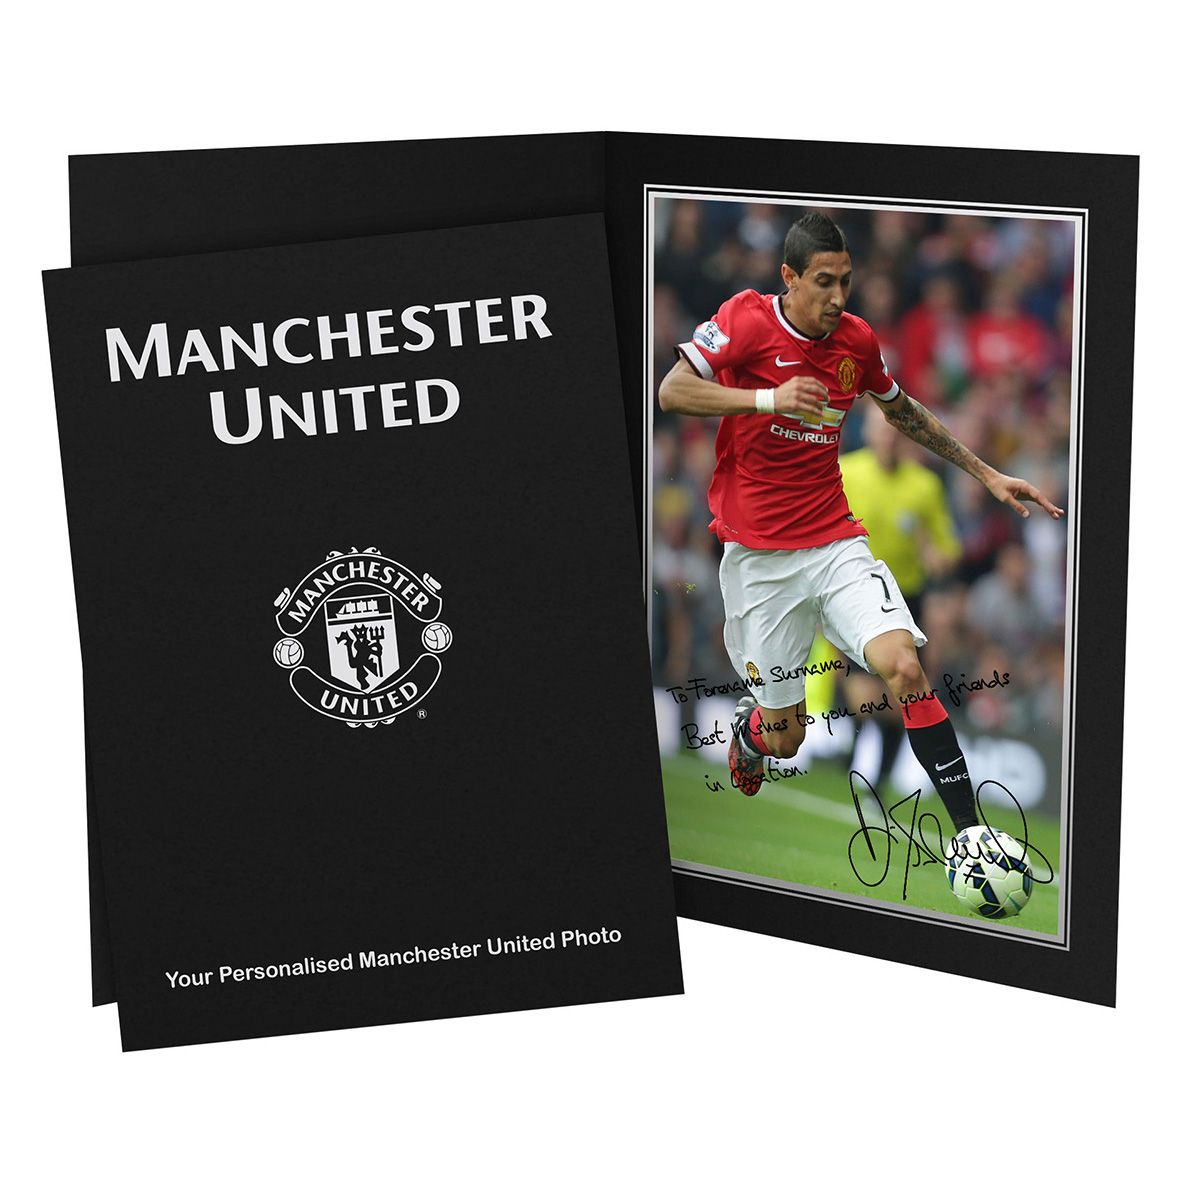 Manchester United Personalised Signature Photo in Presentation Folder - Di Maria